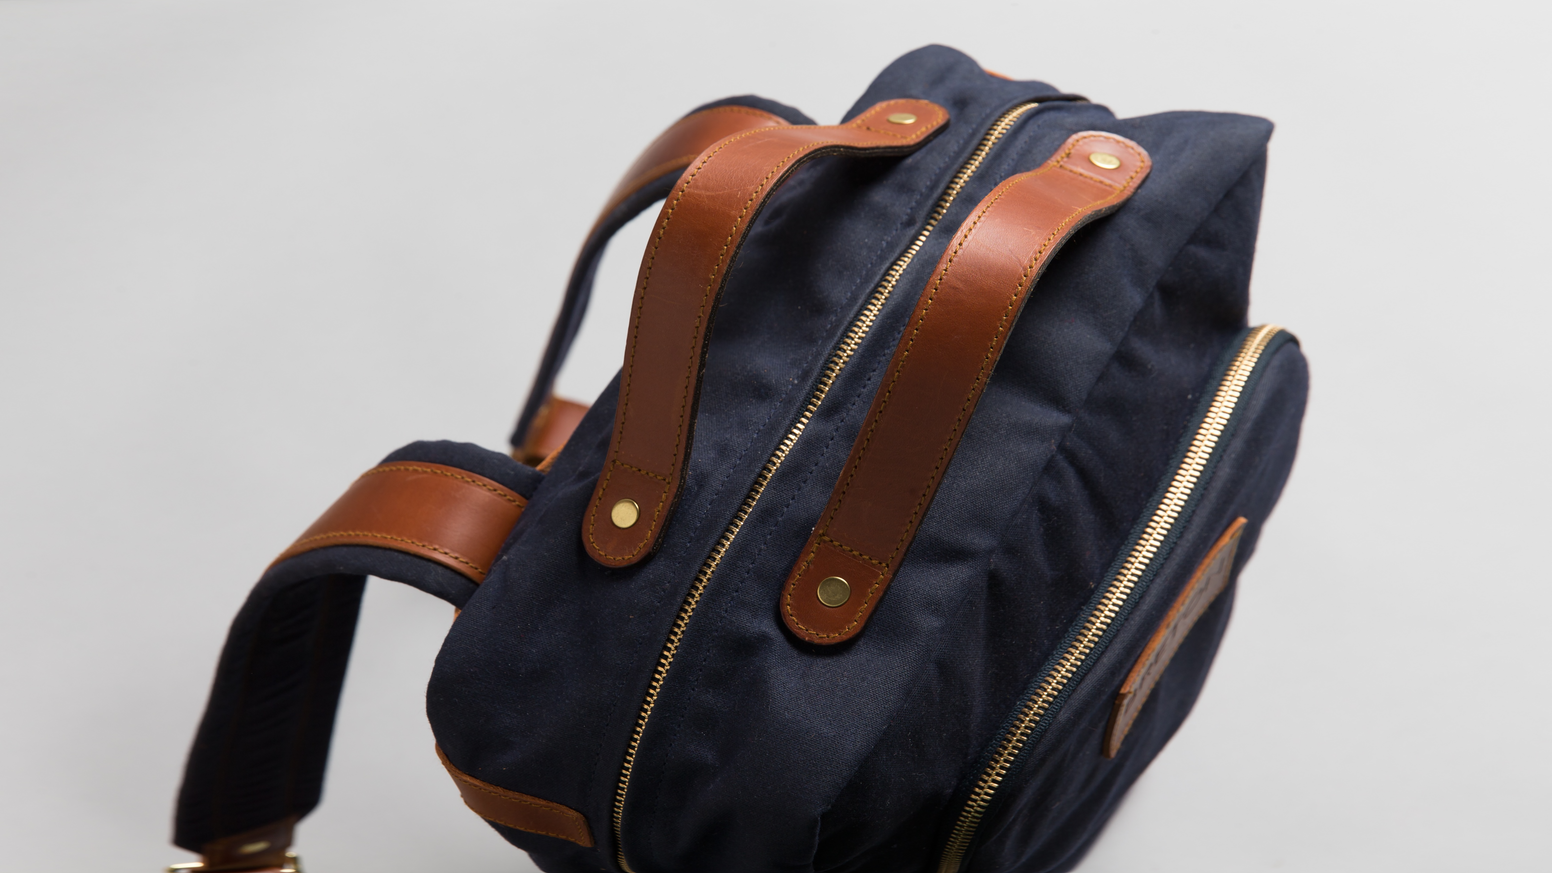 A bag for the modern professional, combining the comfort and convenience of a backpack, with the style and look of a high-end satchel.